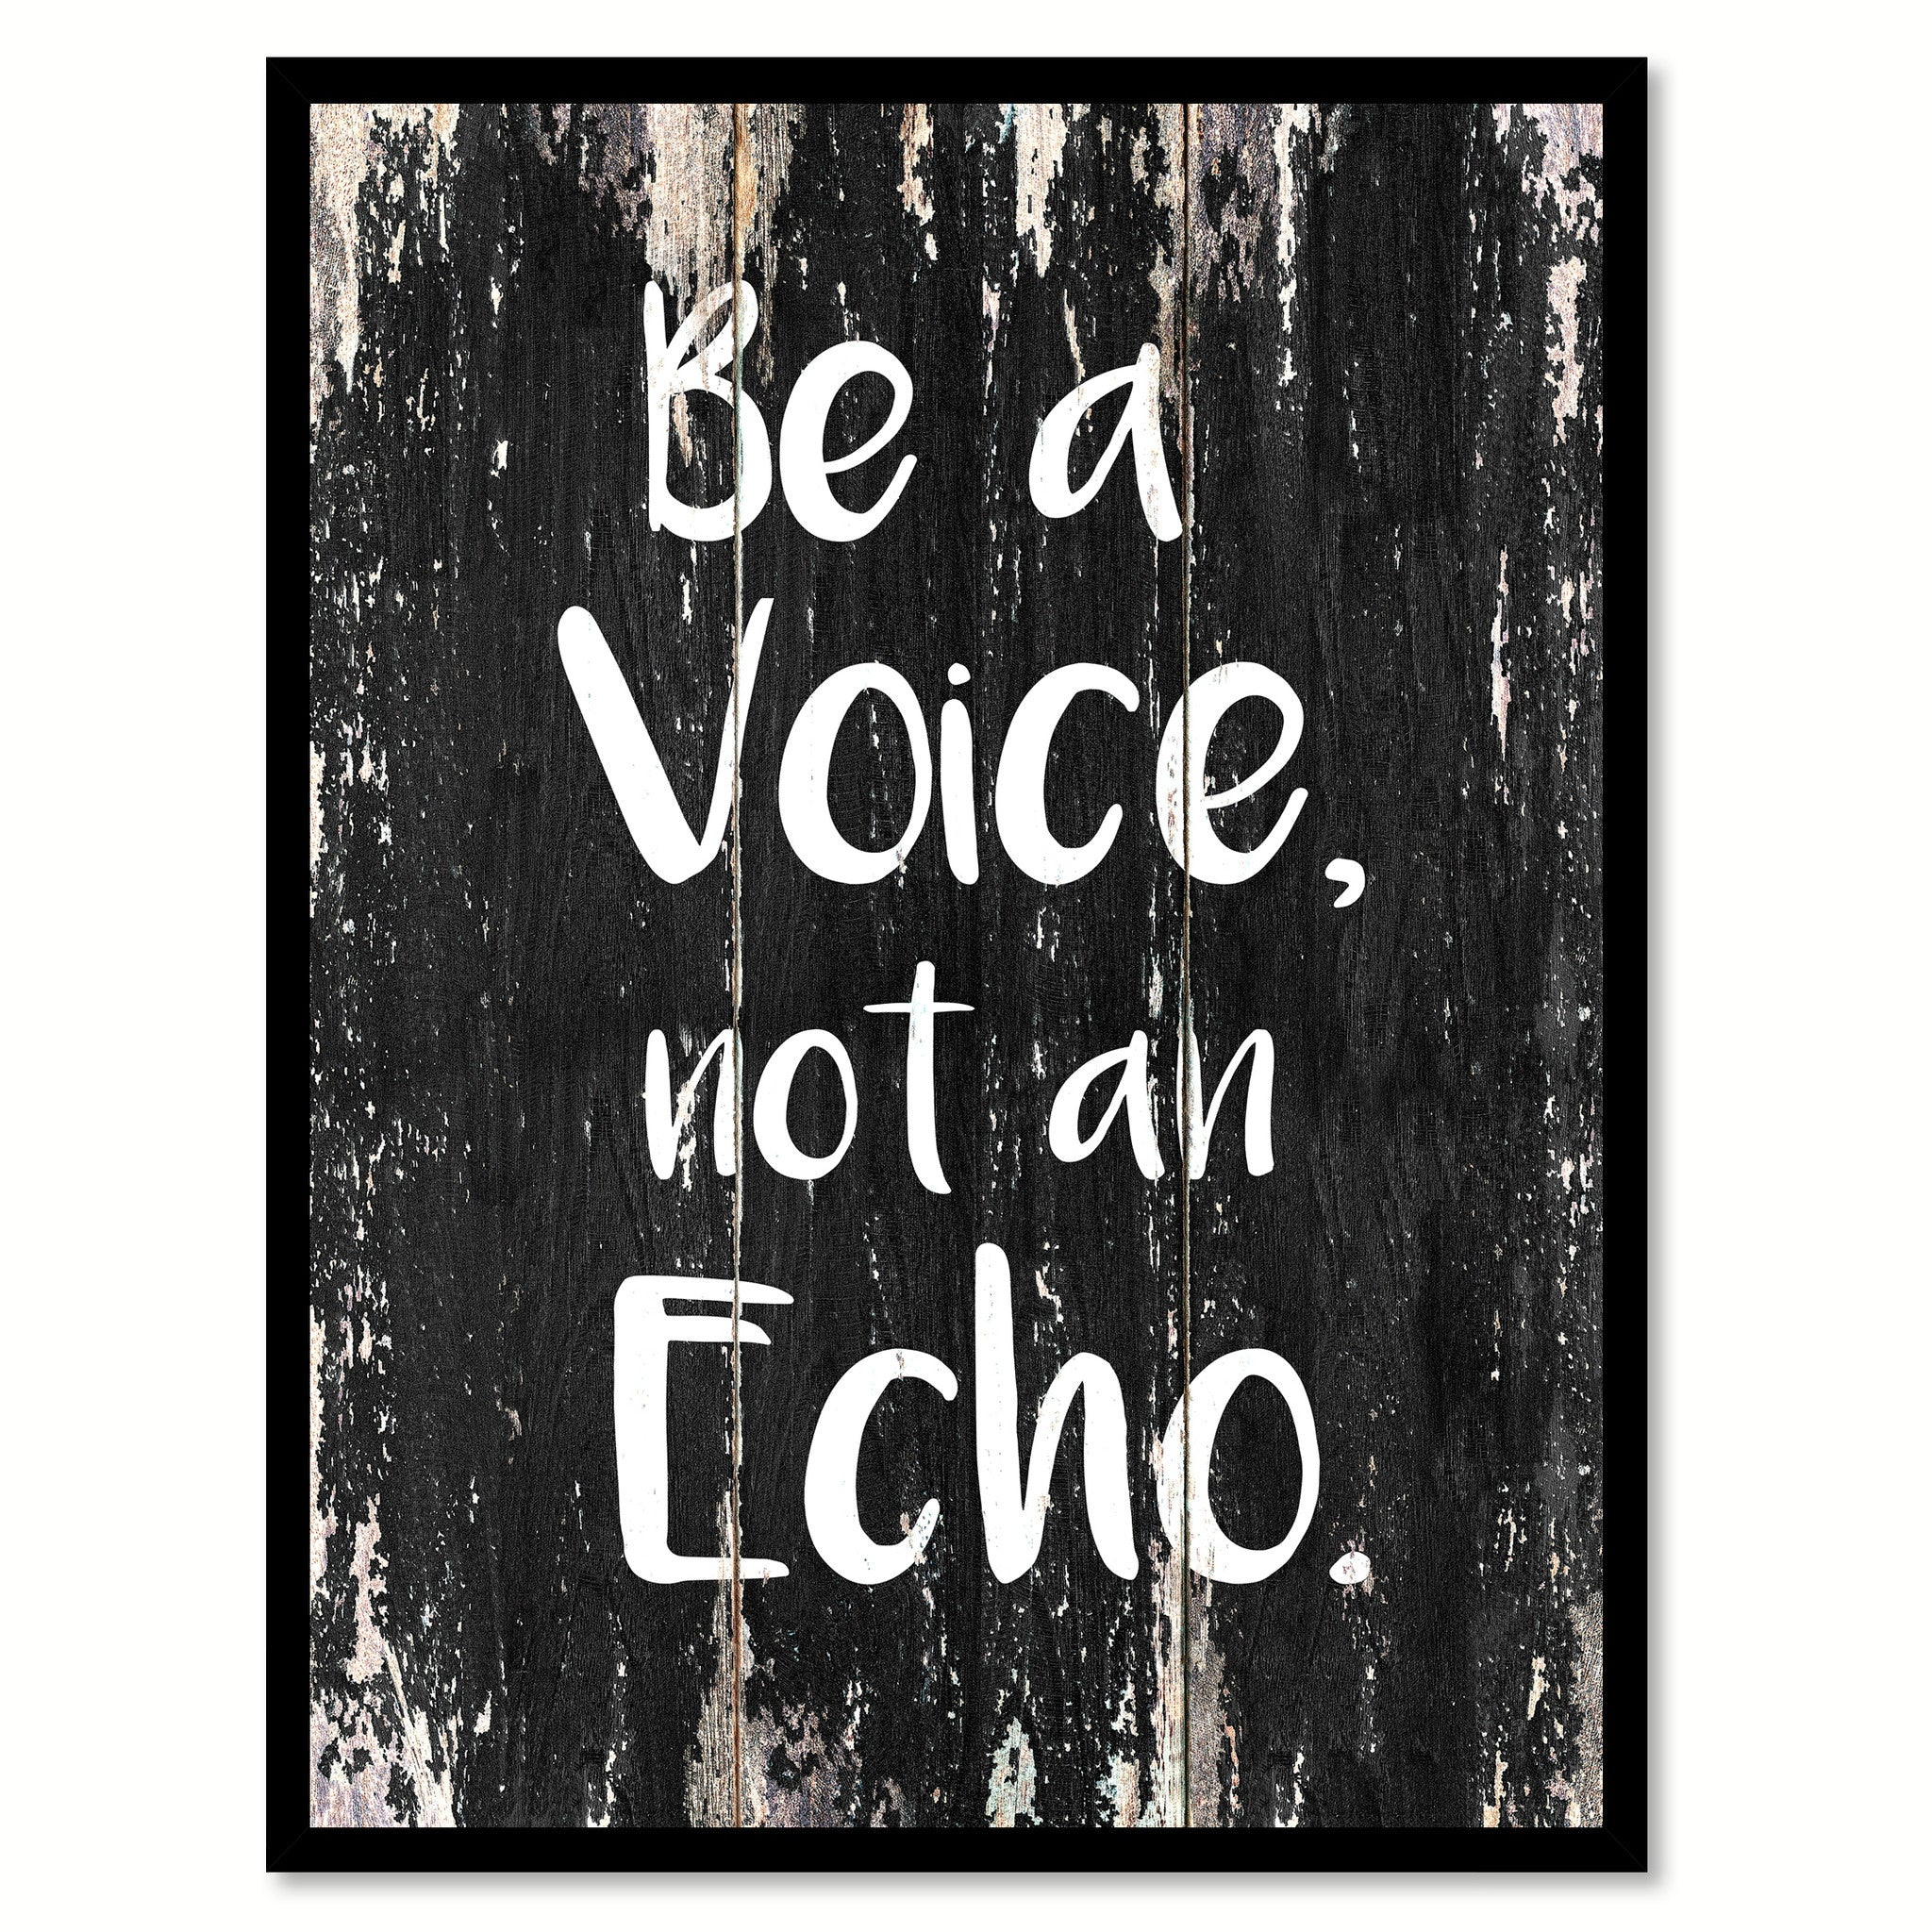 Be a voice not an echo Motivational Quote Saying Canvas Print with Picture Frame Home Decor Wall Art